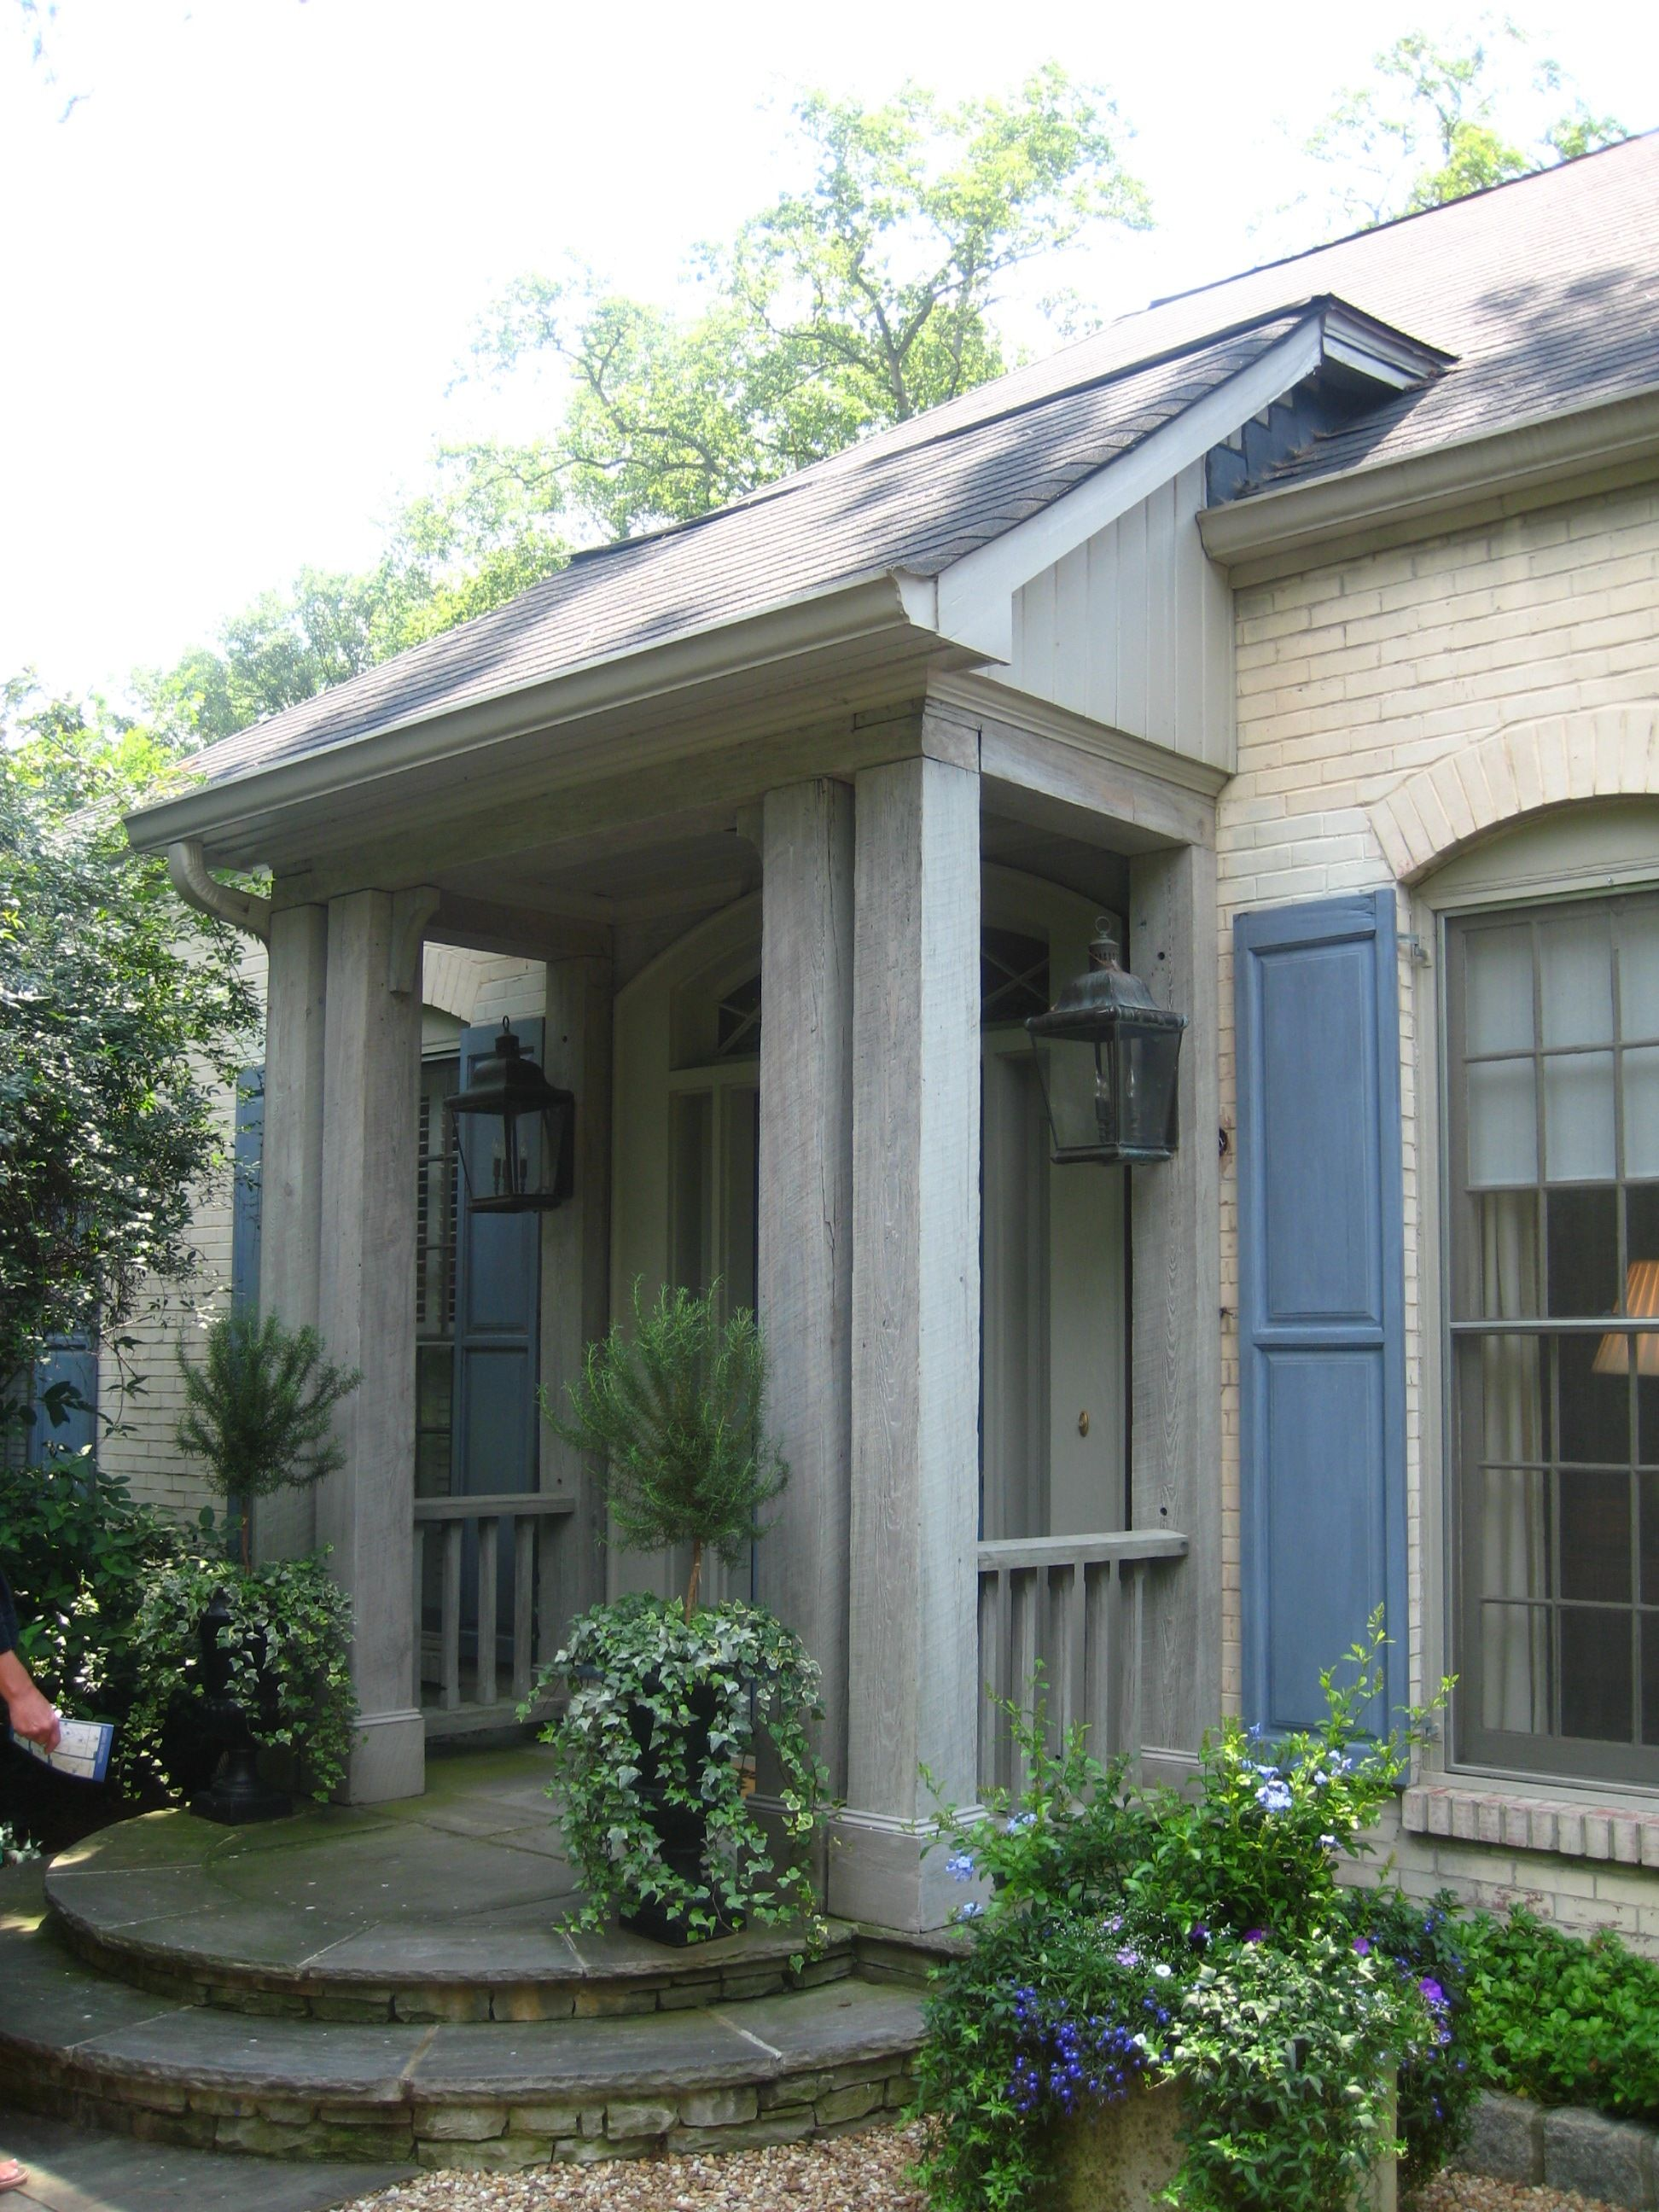 Mudroom Addition To Front Of House Yahoo Search Results: Small Front Porches Designs, Front Porch Design, Round Stairs